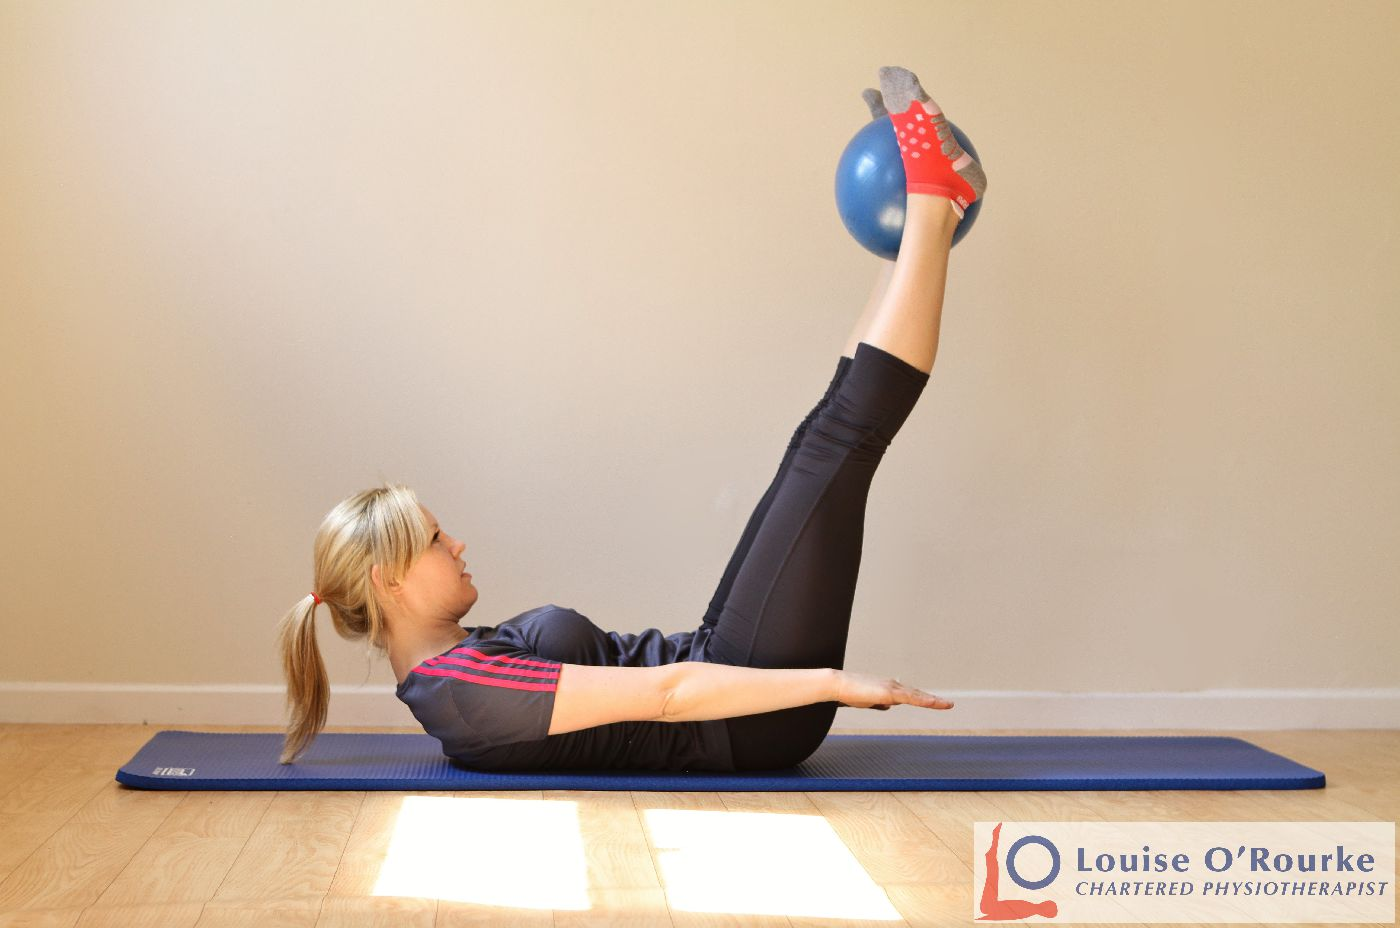 Louise O'Rourke Physiotherapy - Physio Led - Platinum Mat Pilates - Alternative ExercisesCitywest Dublin